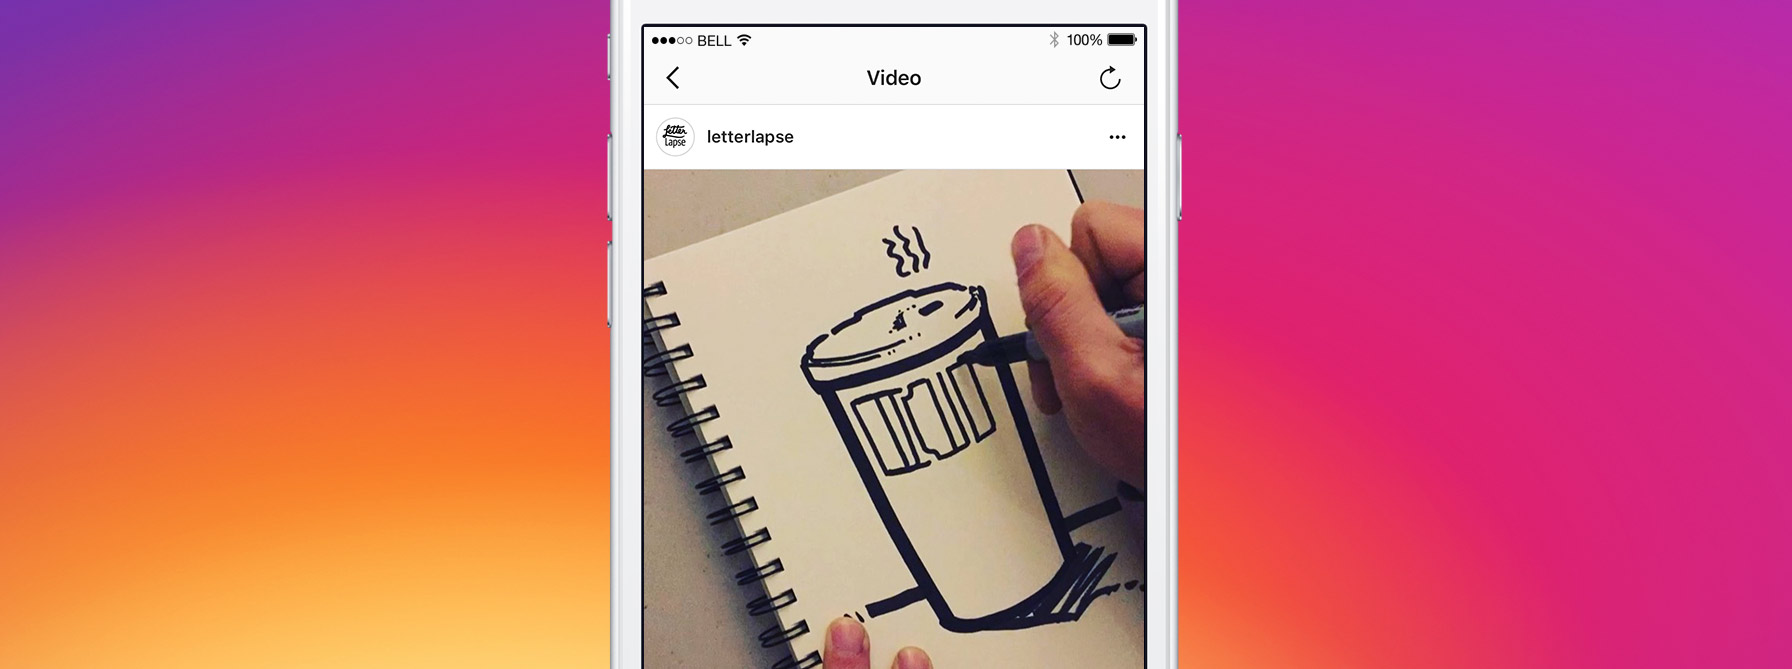 Instagram videos: lessons for finance brands header